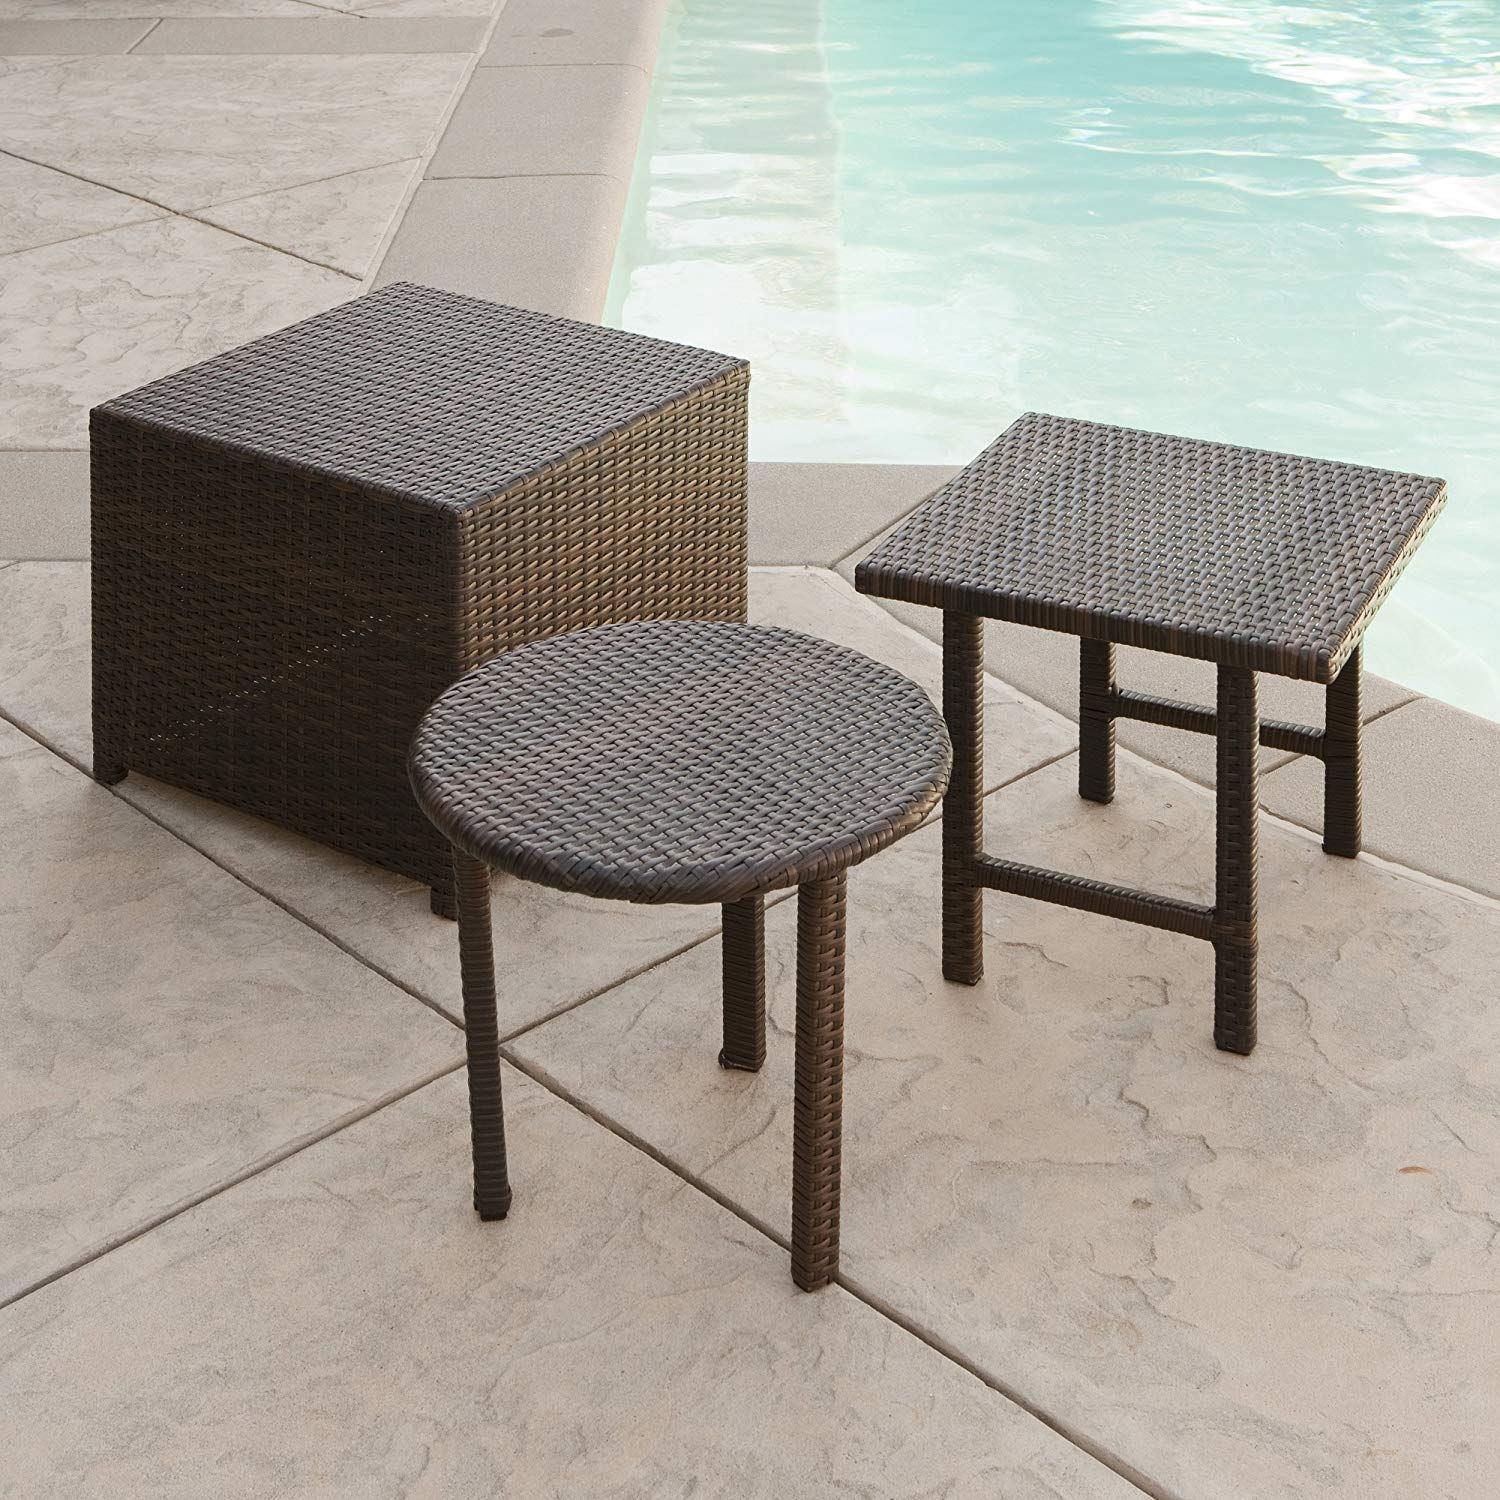 best selling palmilla wicker table set multibrown outdoor patio accent tables side garden round linen tablecloth collapsible coffee ikea narrow nightstand corner study retro